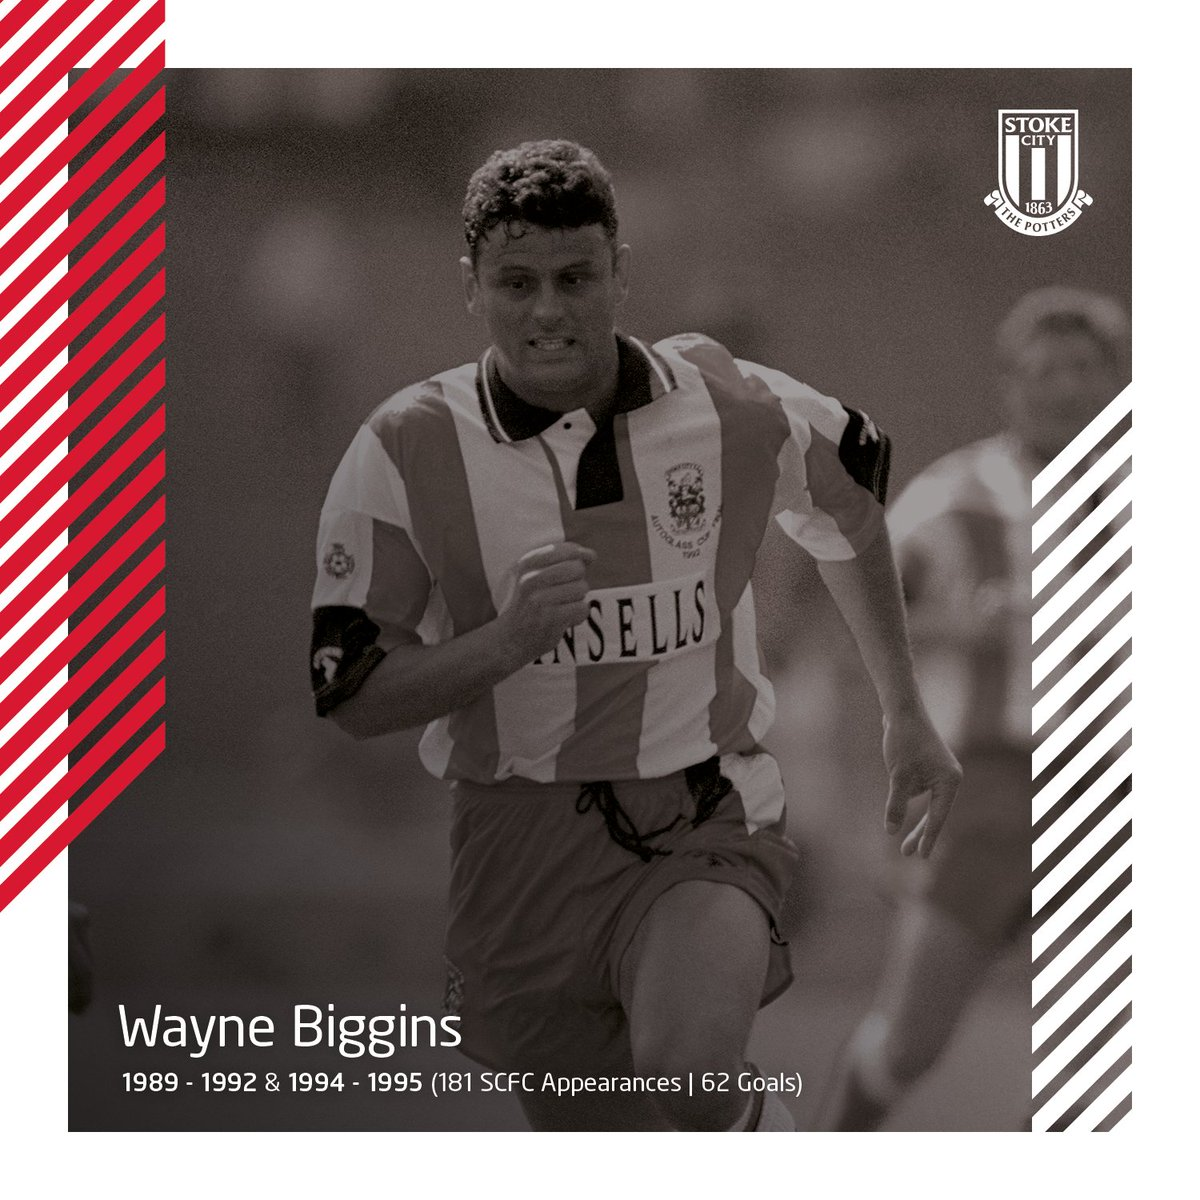 Stoke City Fiche Equipe Football Eurosport Selis Electric Wheel Chair Fcstokecity Happy Birthday To Former Striker Wayne Biggins Who Turns 57 Today Bertie Notched 62 Goals In 181 Appeara